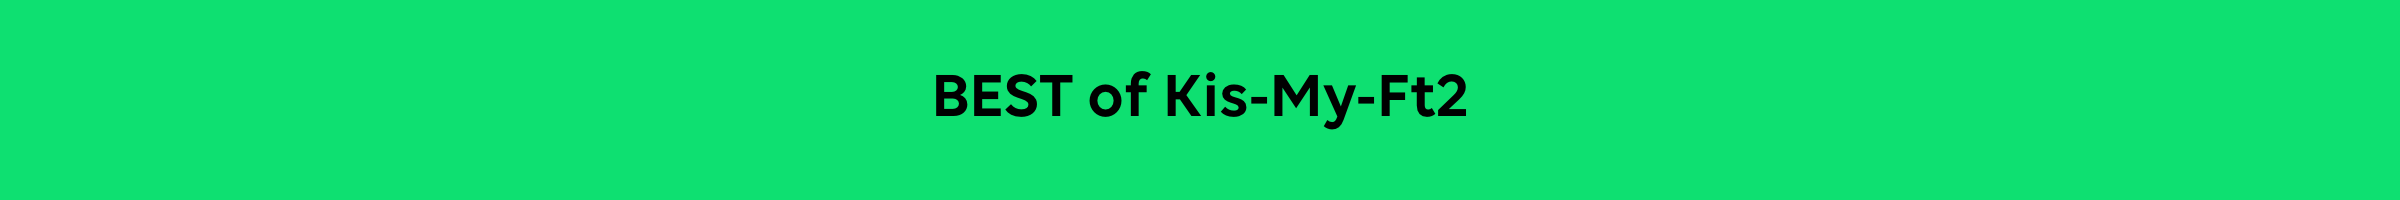 BEST of Kis-My-Ft2